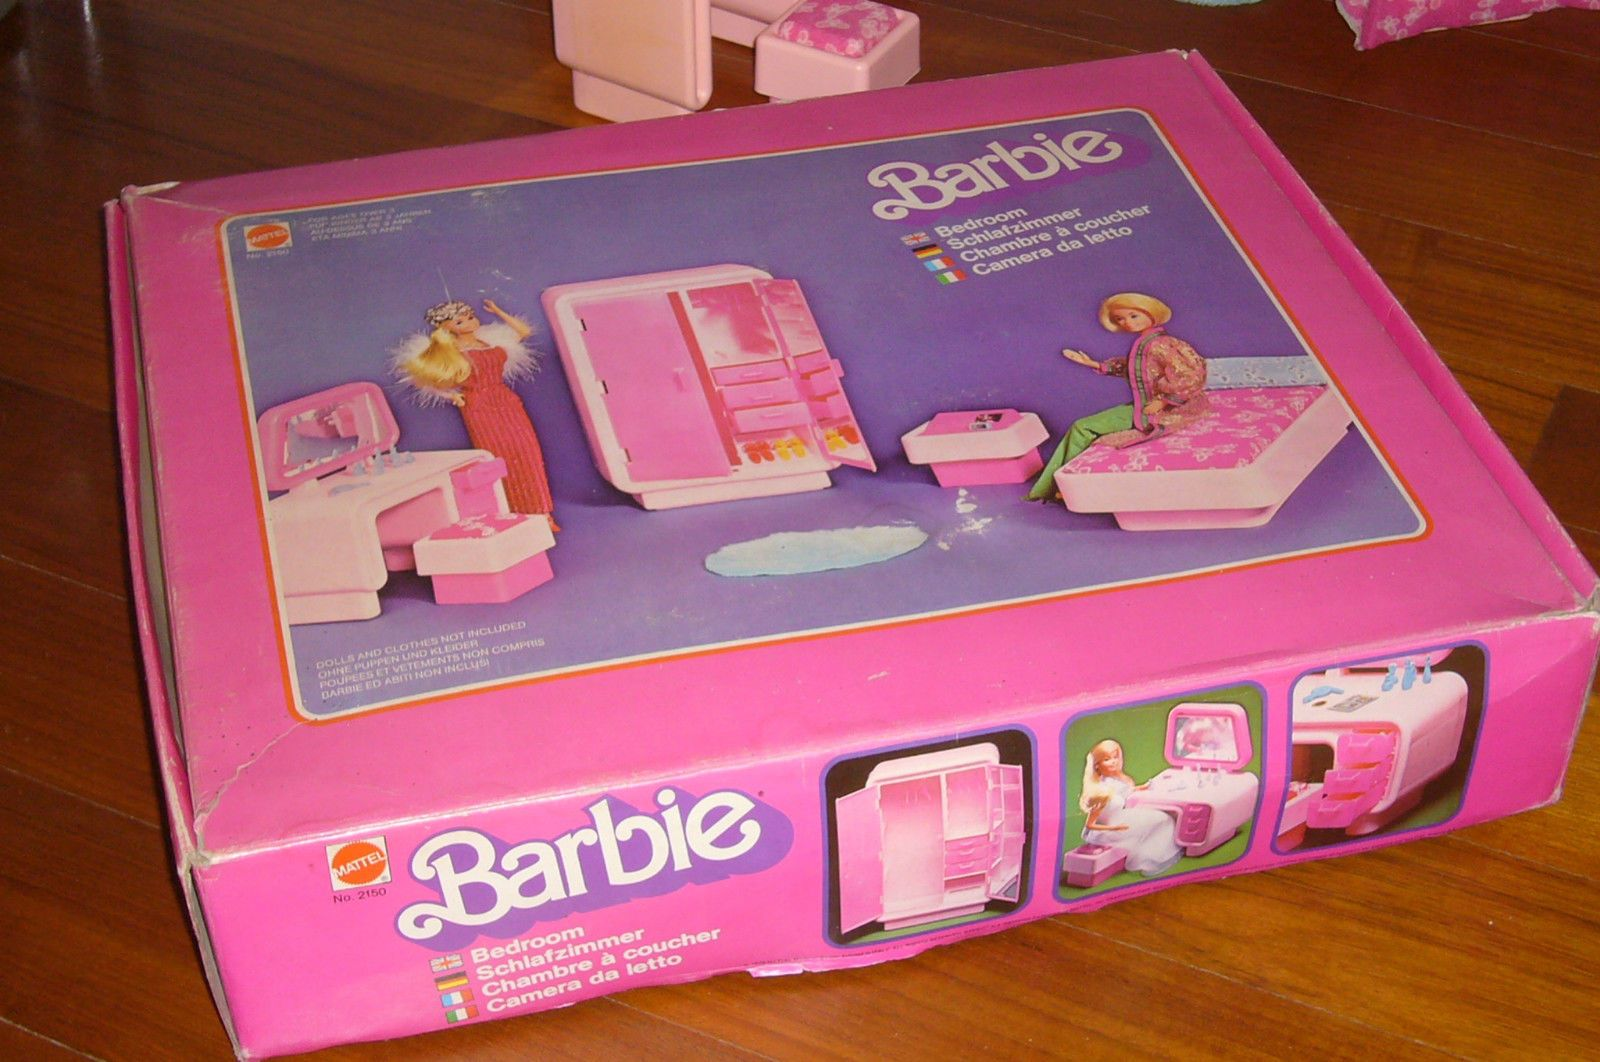 Camera da letto bedroom barbie superstar mattel doll bambola vintage ...